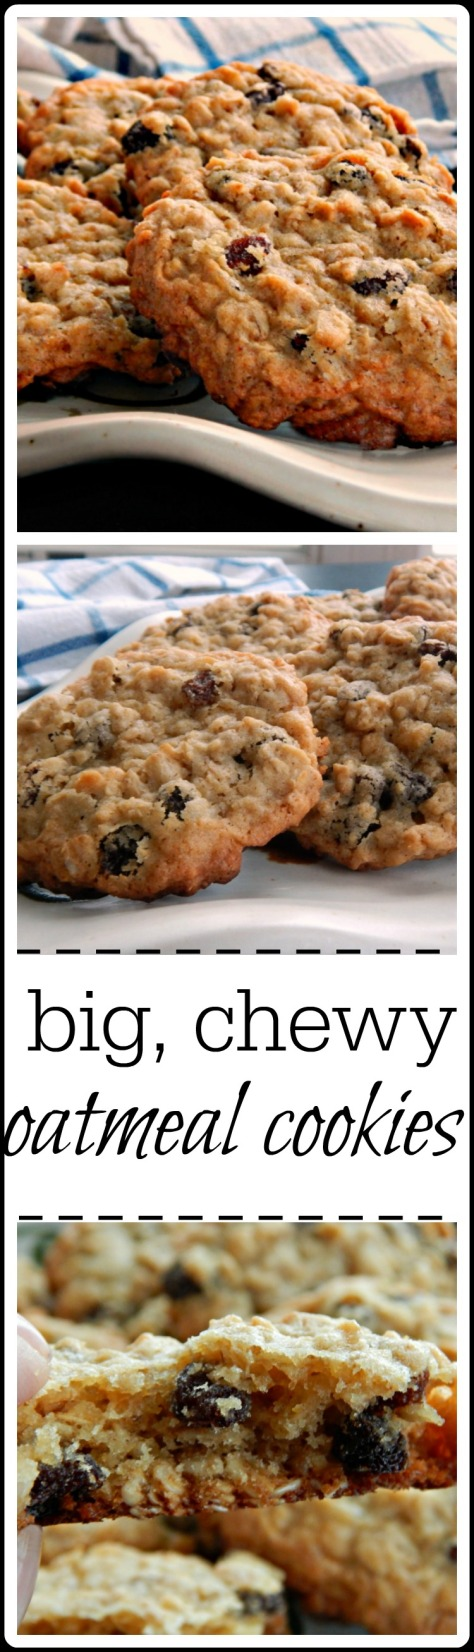 These are the perfect oatmeal cookies! Make them plain, with raisins, or why not chocolate?